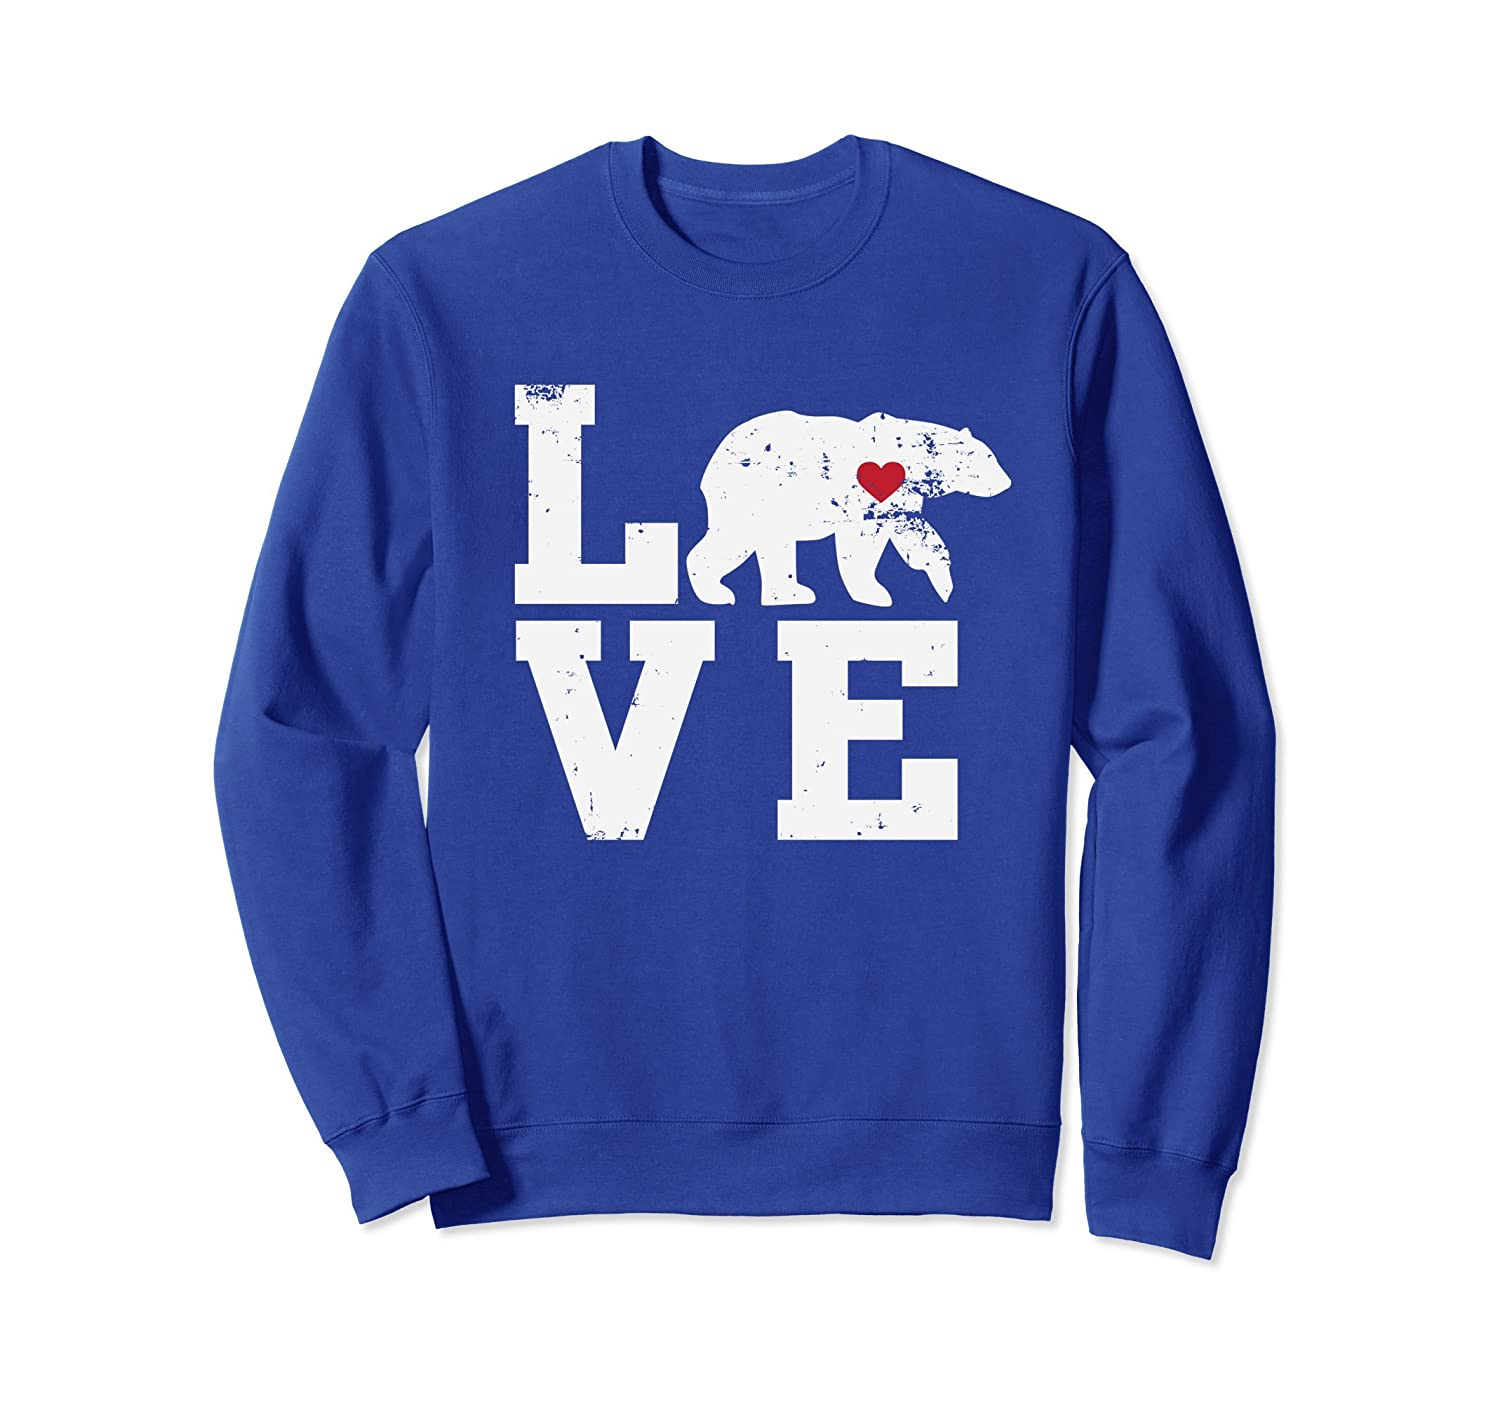 Love Polar Bears, Love The Outdoors Sweatshirt-AZP